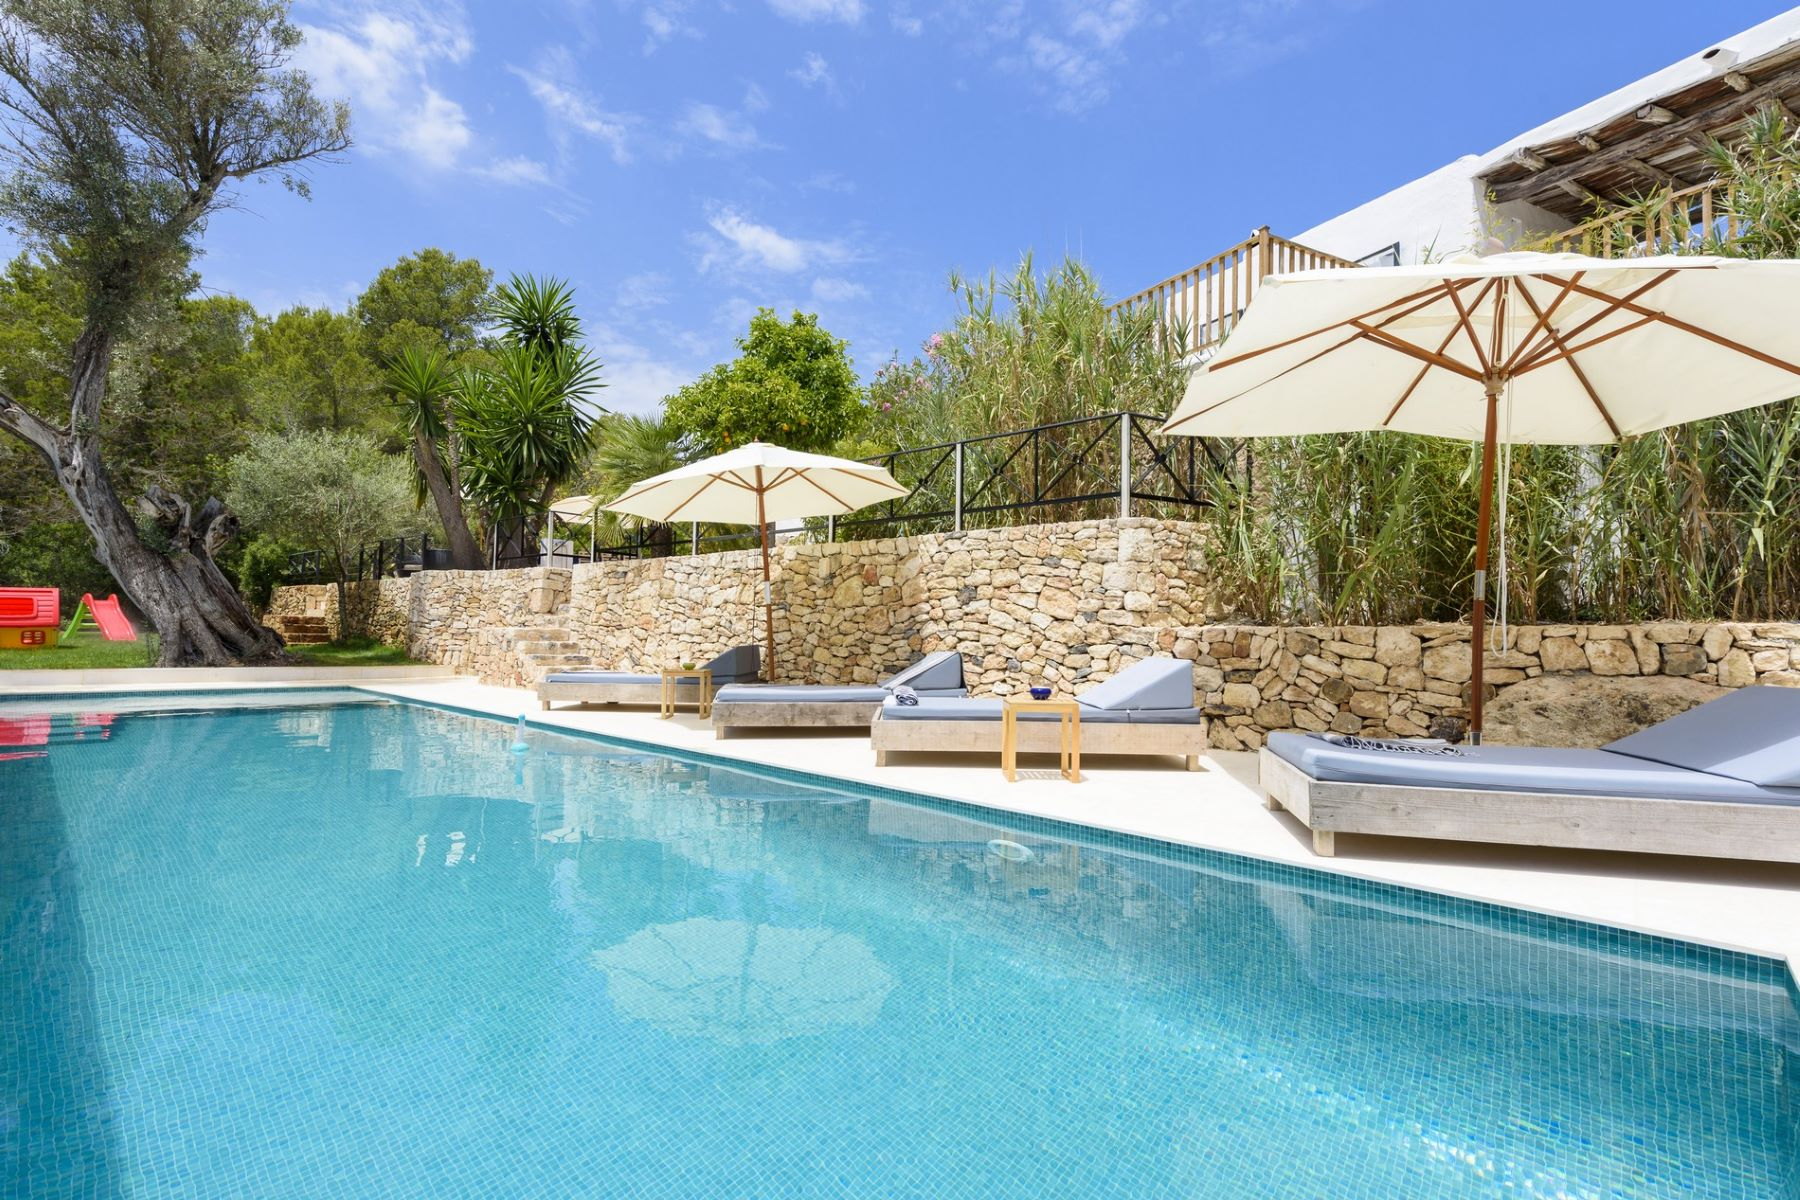 Single Family Home for Rent at Charming Finca Completely Renovated San Antonio, Ibiza 07820 Spain